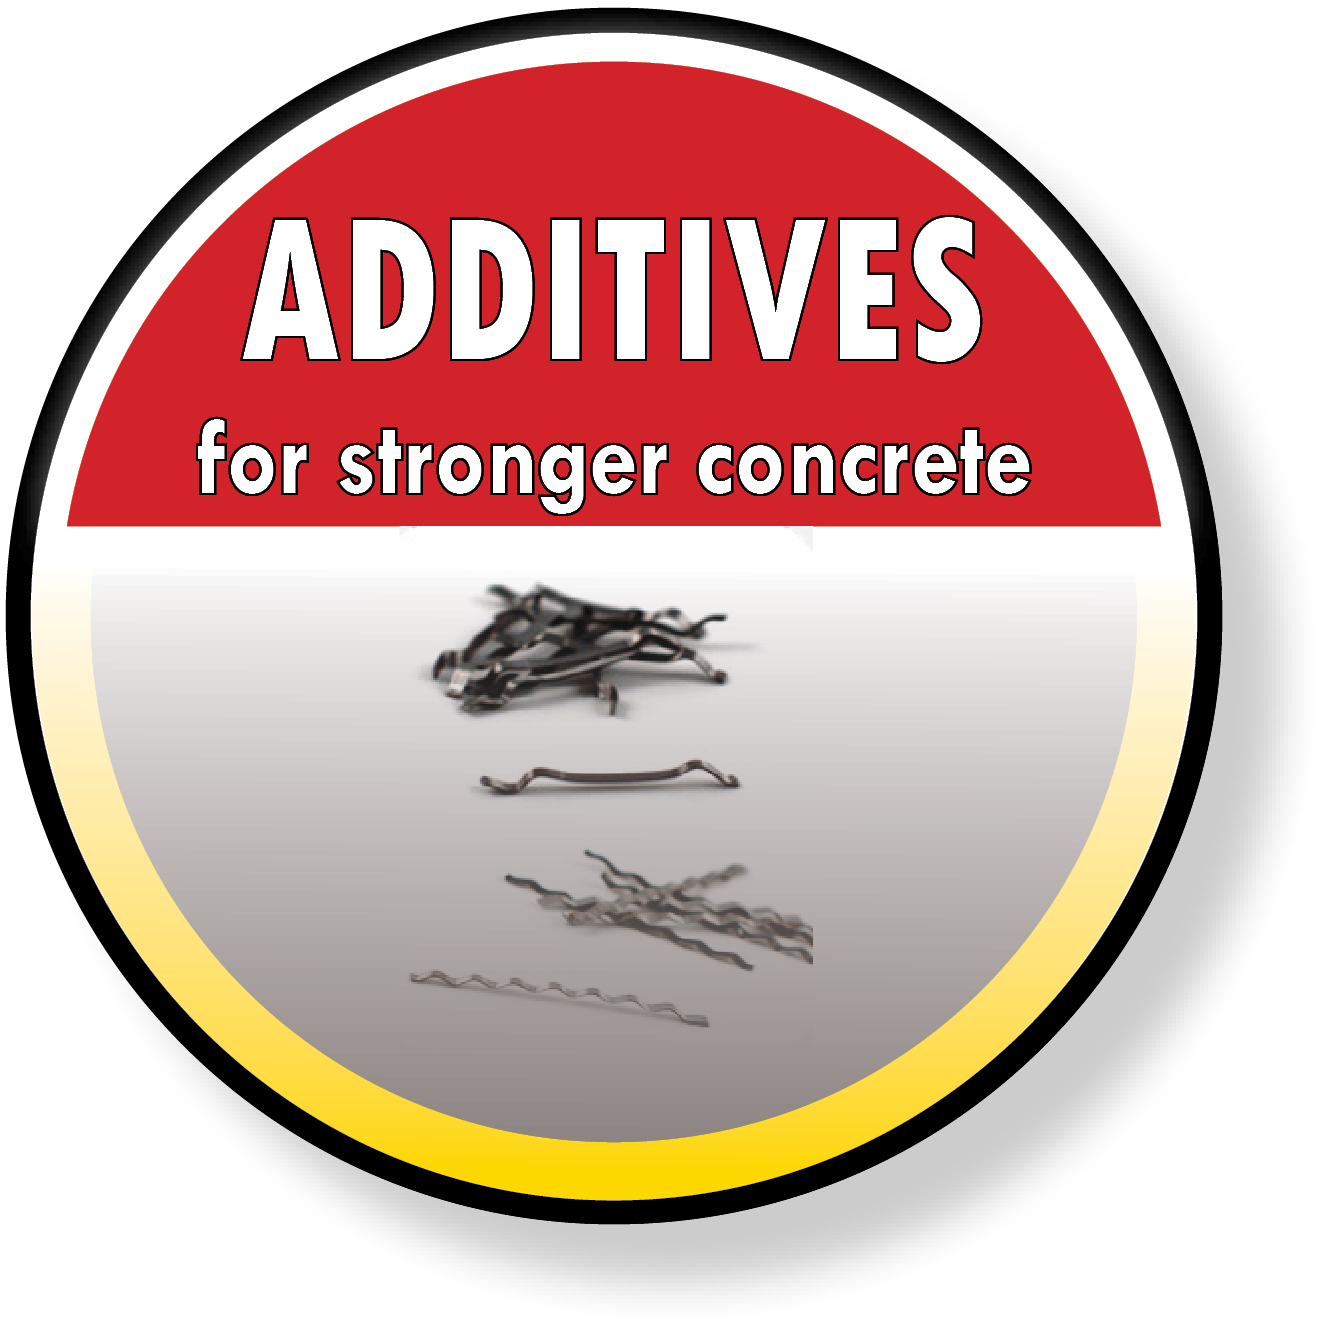 Learn about products that make your concrete stronger, last longer and save you money.